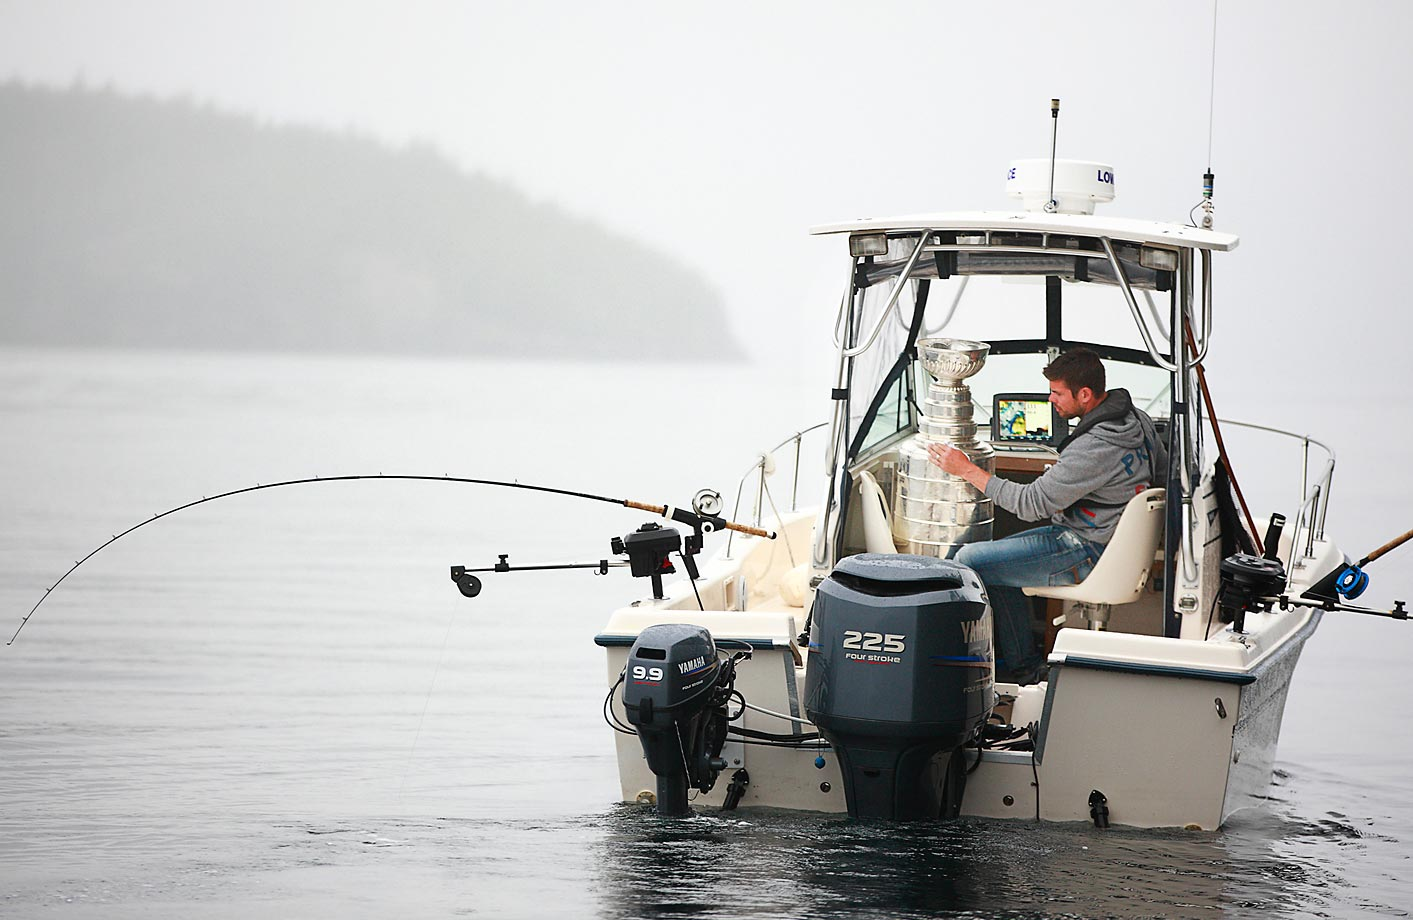 Willie Mitchell of the Los Angeles Kings goes fishing with the Stanley Cup in Telegraph Cove, British Columbia. Mitchell took the Stanley Cup to his hometown of Port McNeill, B.C. for his one-day celebration with the prized trophy.